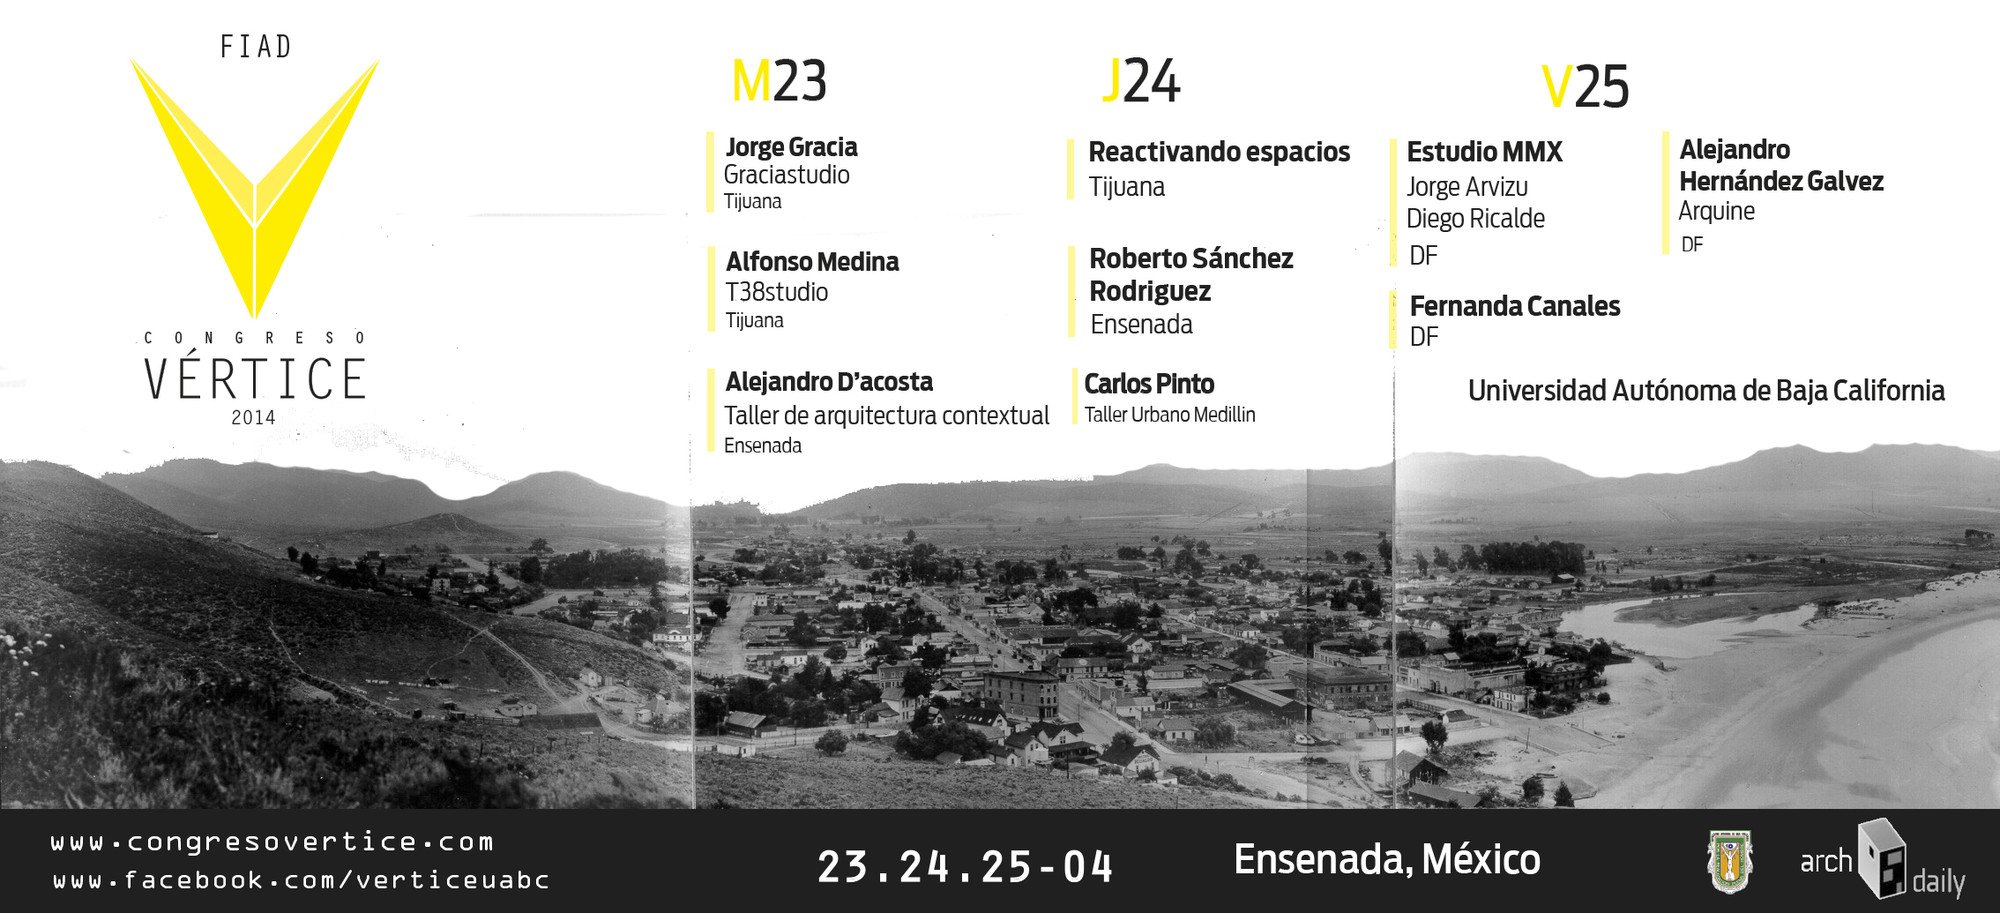 Congreso Vertice 2014 / Ensenada, Baja California